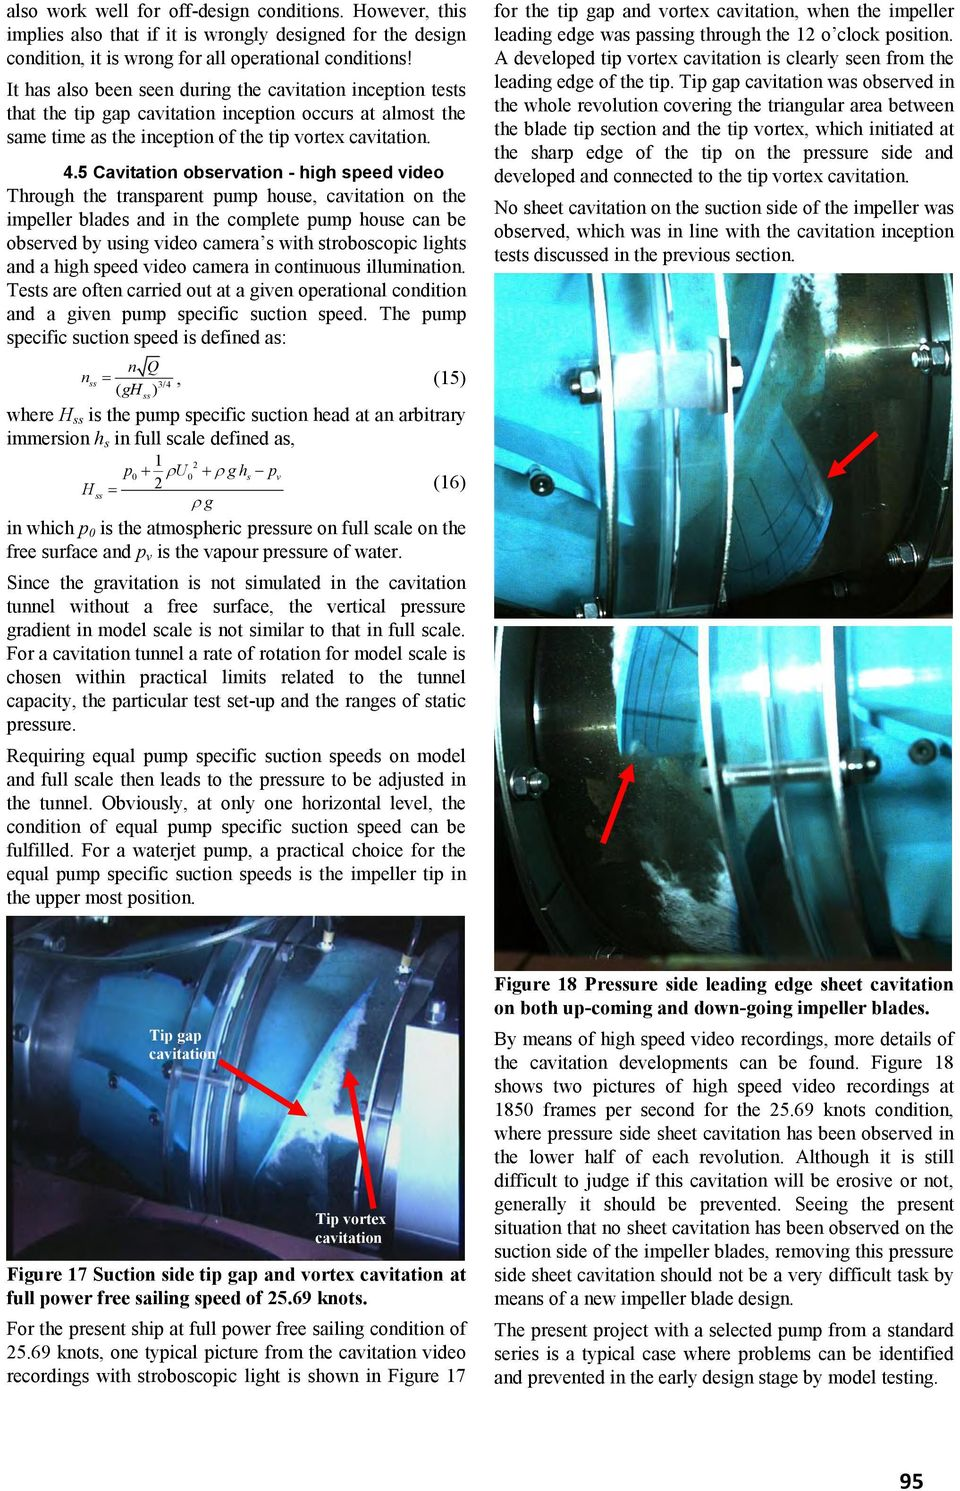 5 Cavitation observation - high speed video Through the transparent pump house, cavitation on the impeller blades and in the complete pump house can be observed by using video camera s with